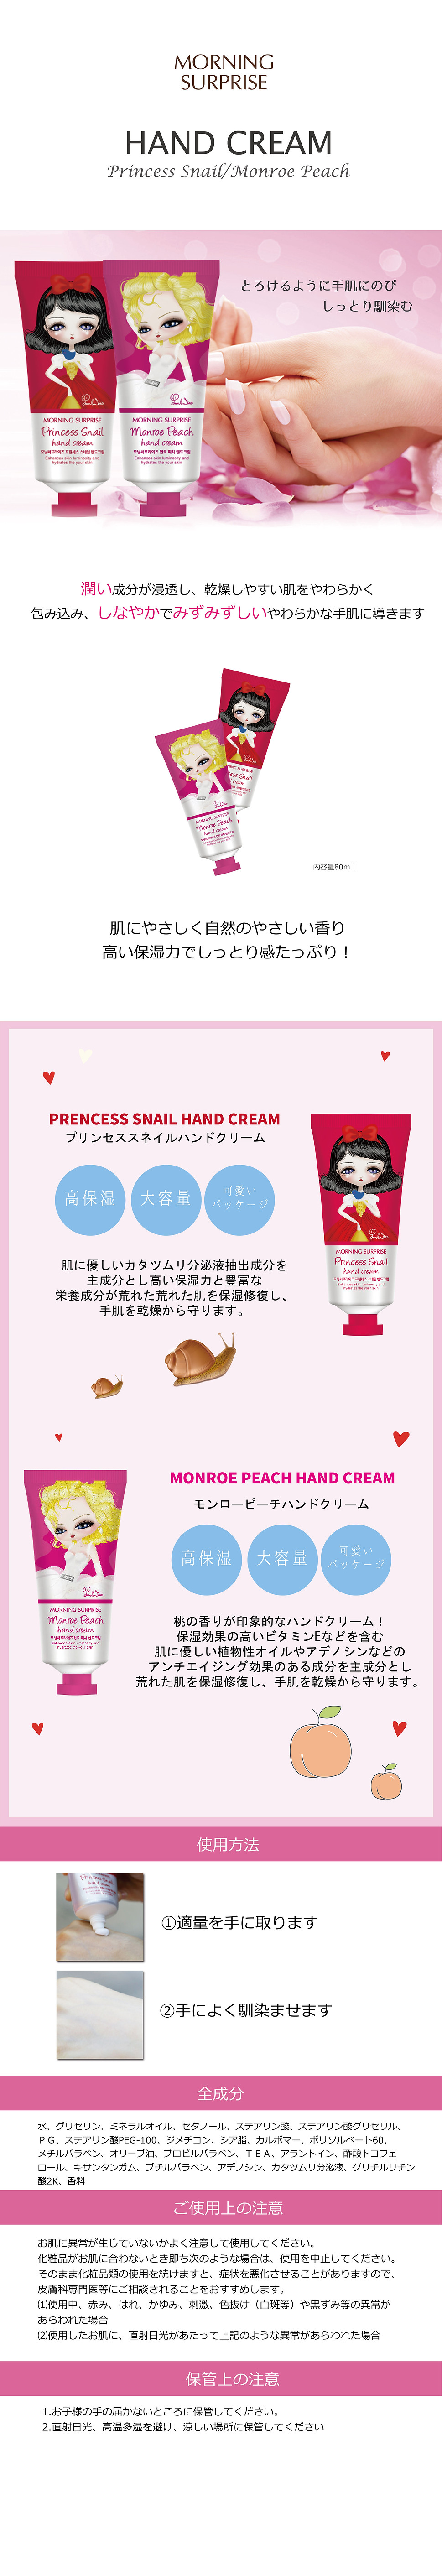 사이트용_PRINCESS-SNAILHAND-CREAM.jpg